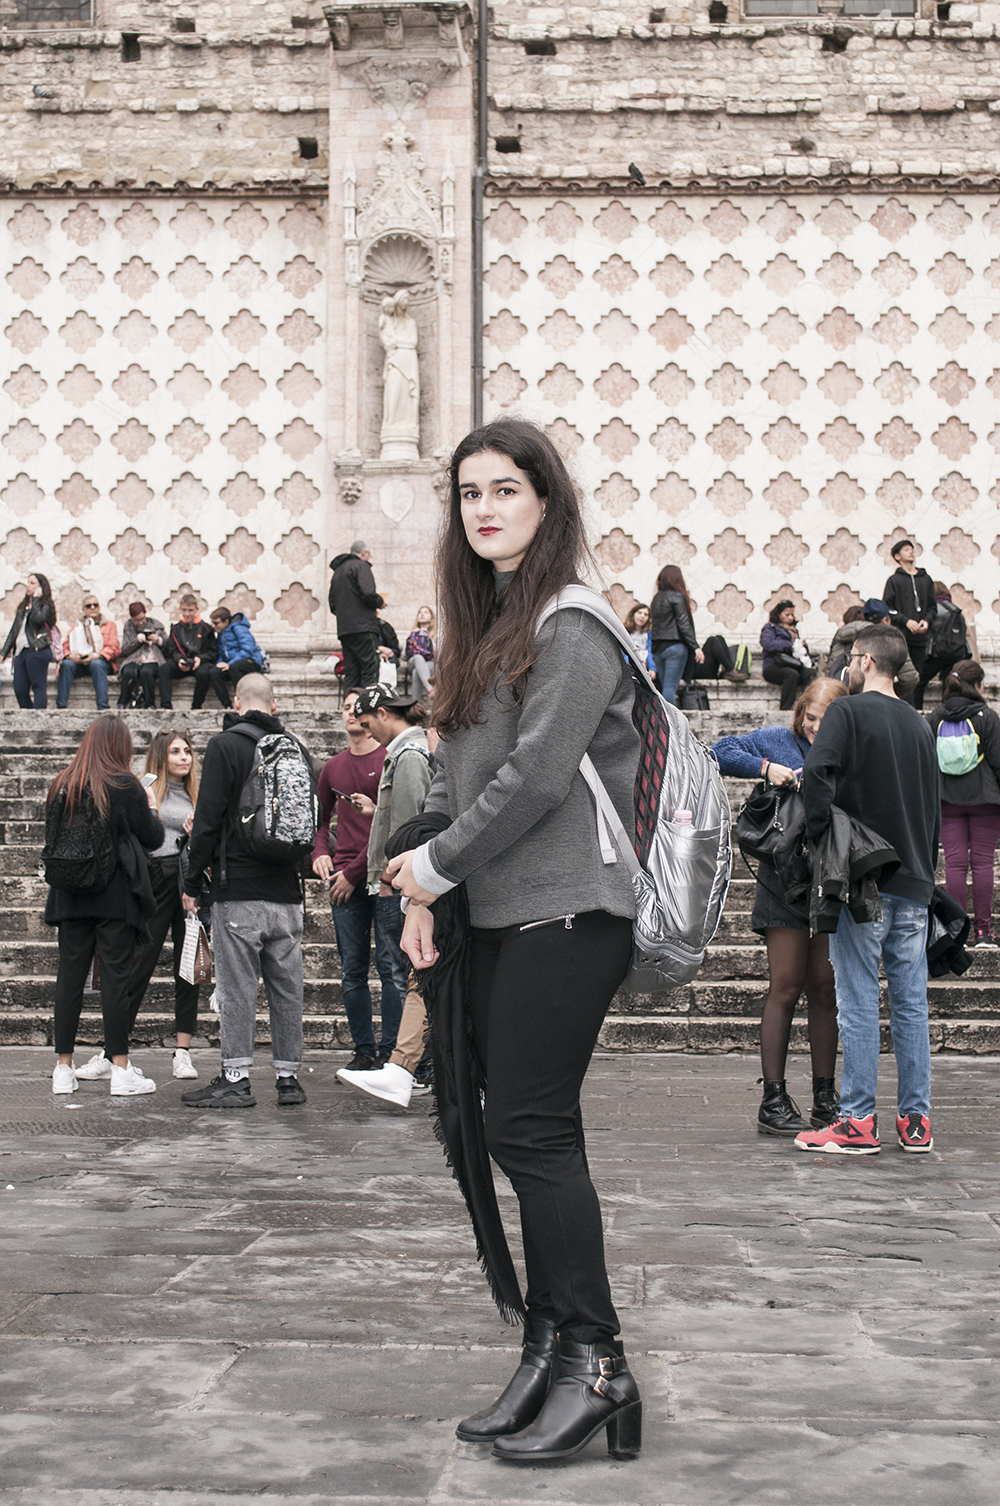 something fashion blogger influencer streetstyle firenze spain italianbloggers day trip erasmus perugia experiences studying abroad_0369